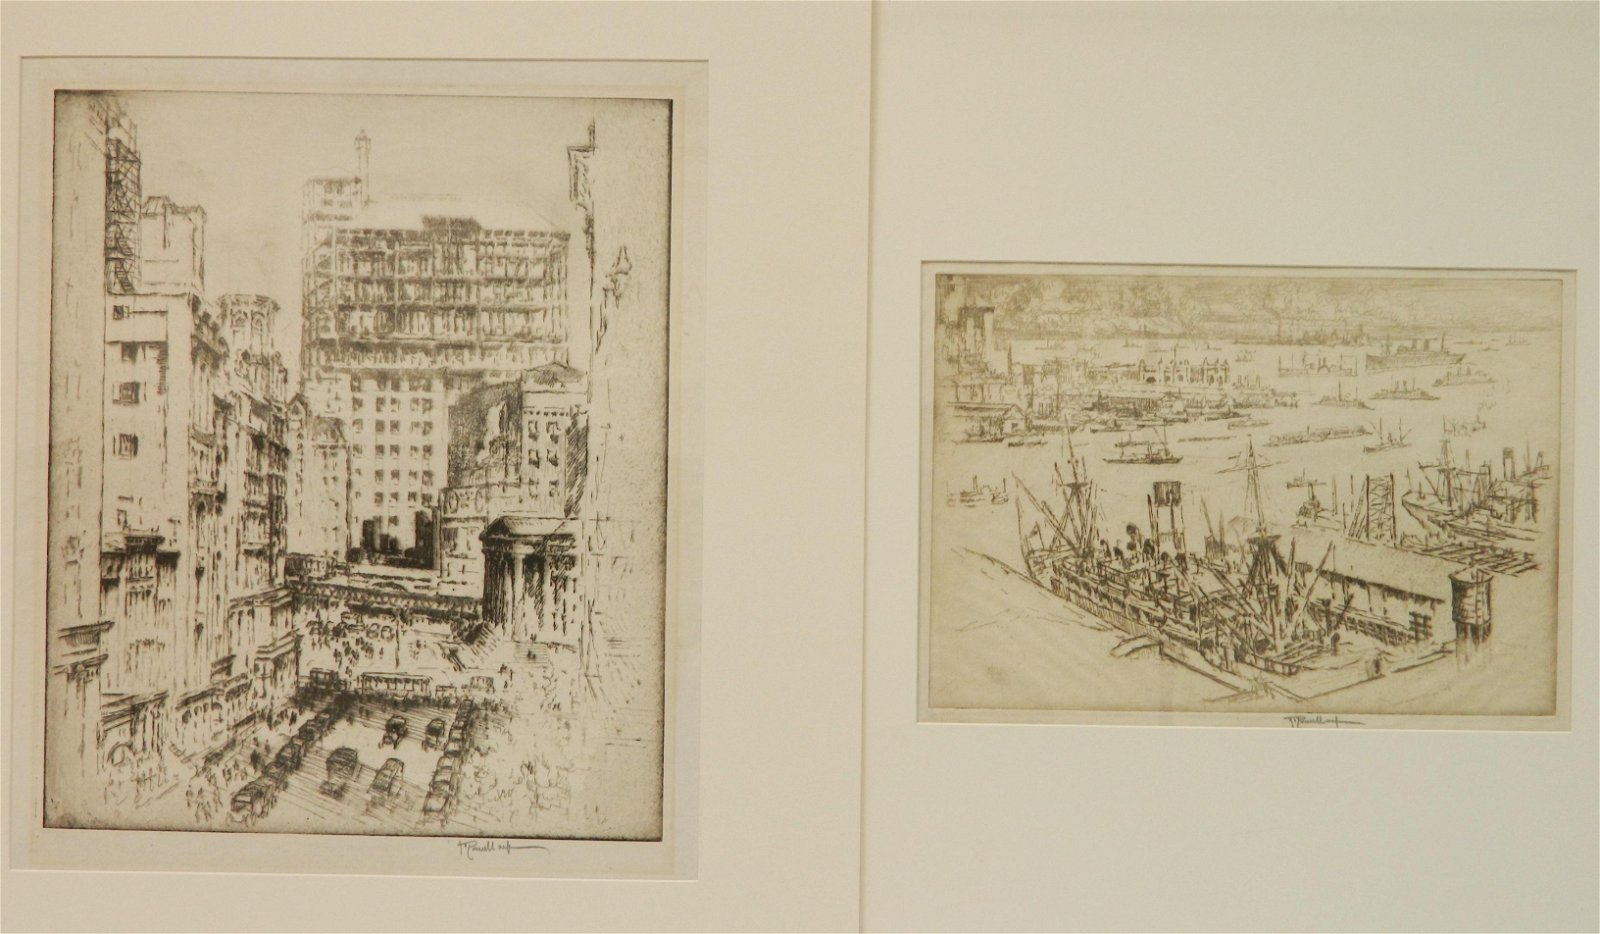 2 Joseph Pennell etchings